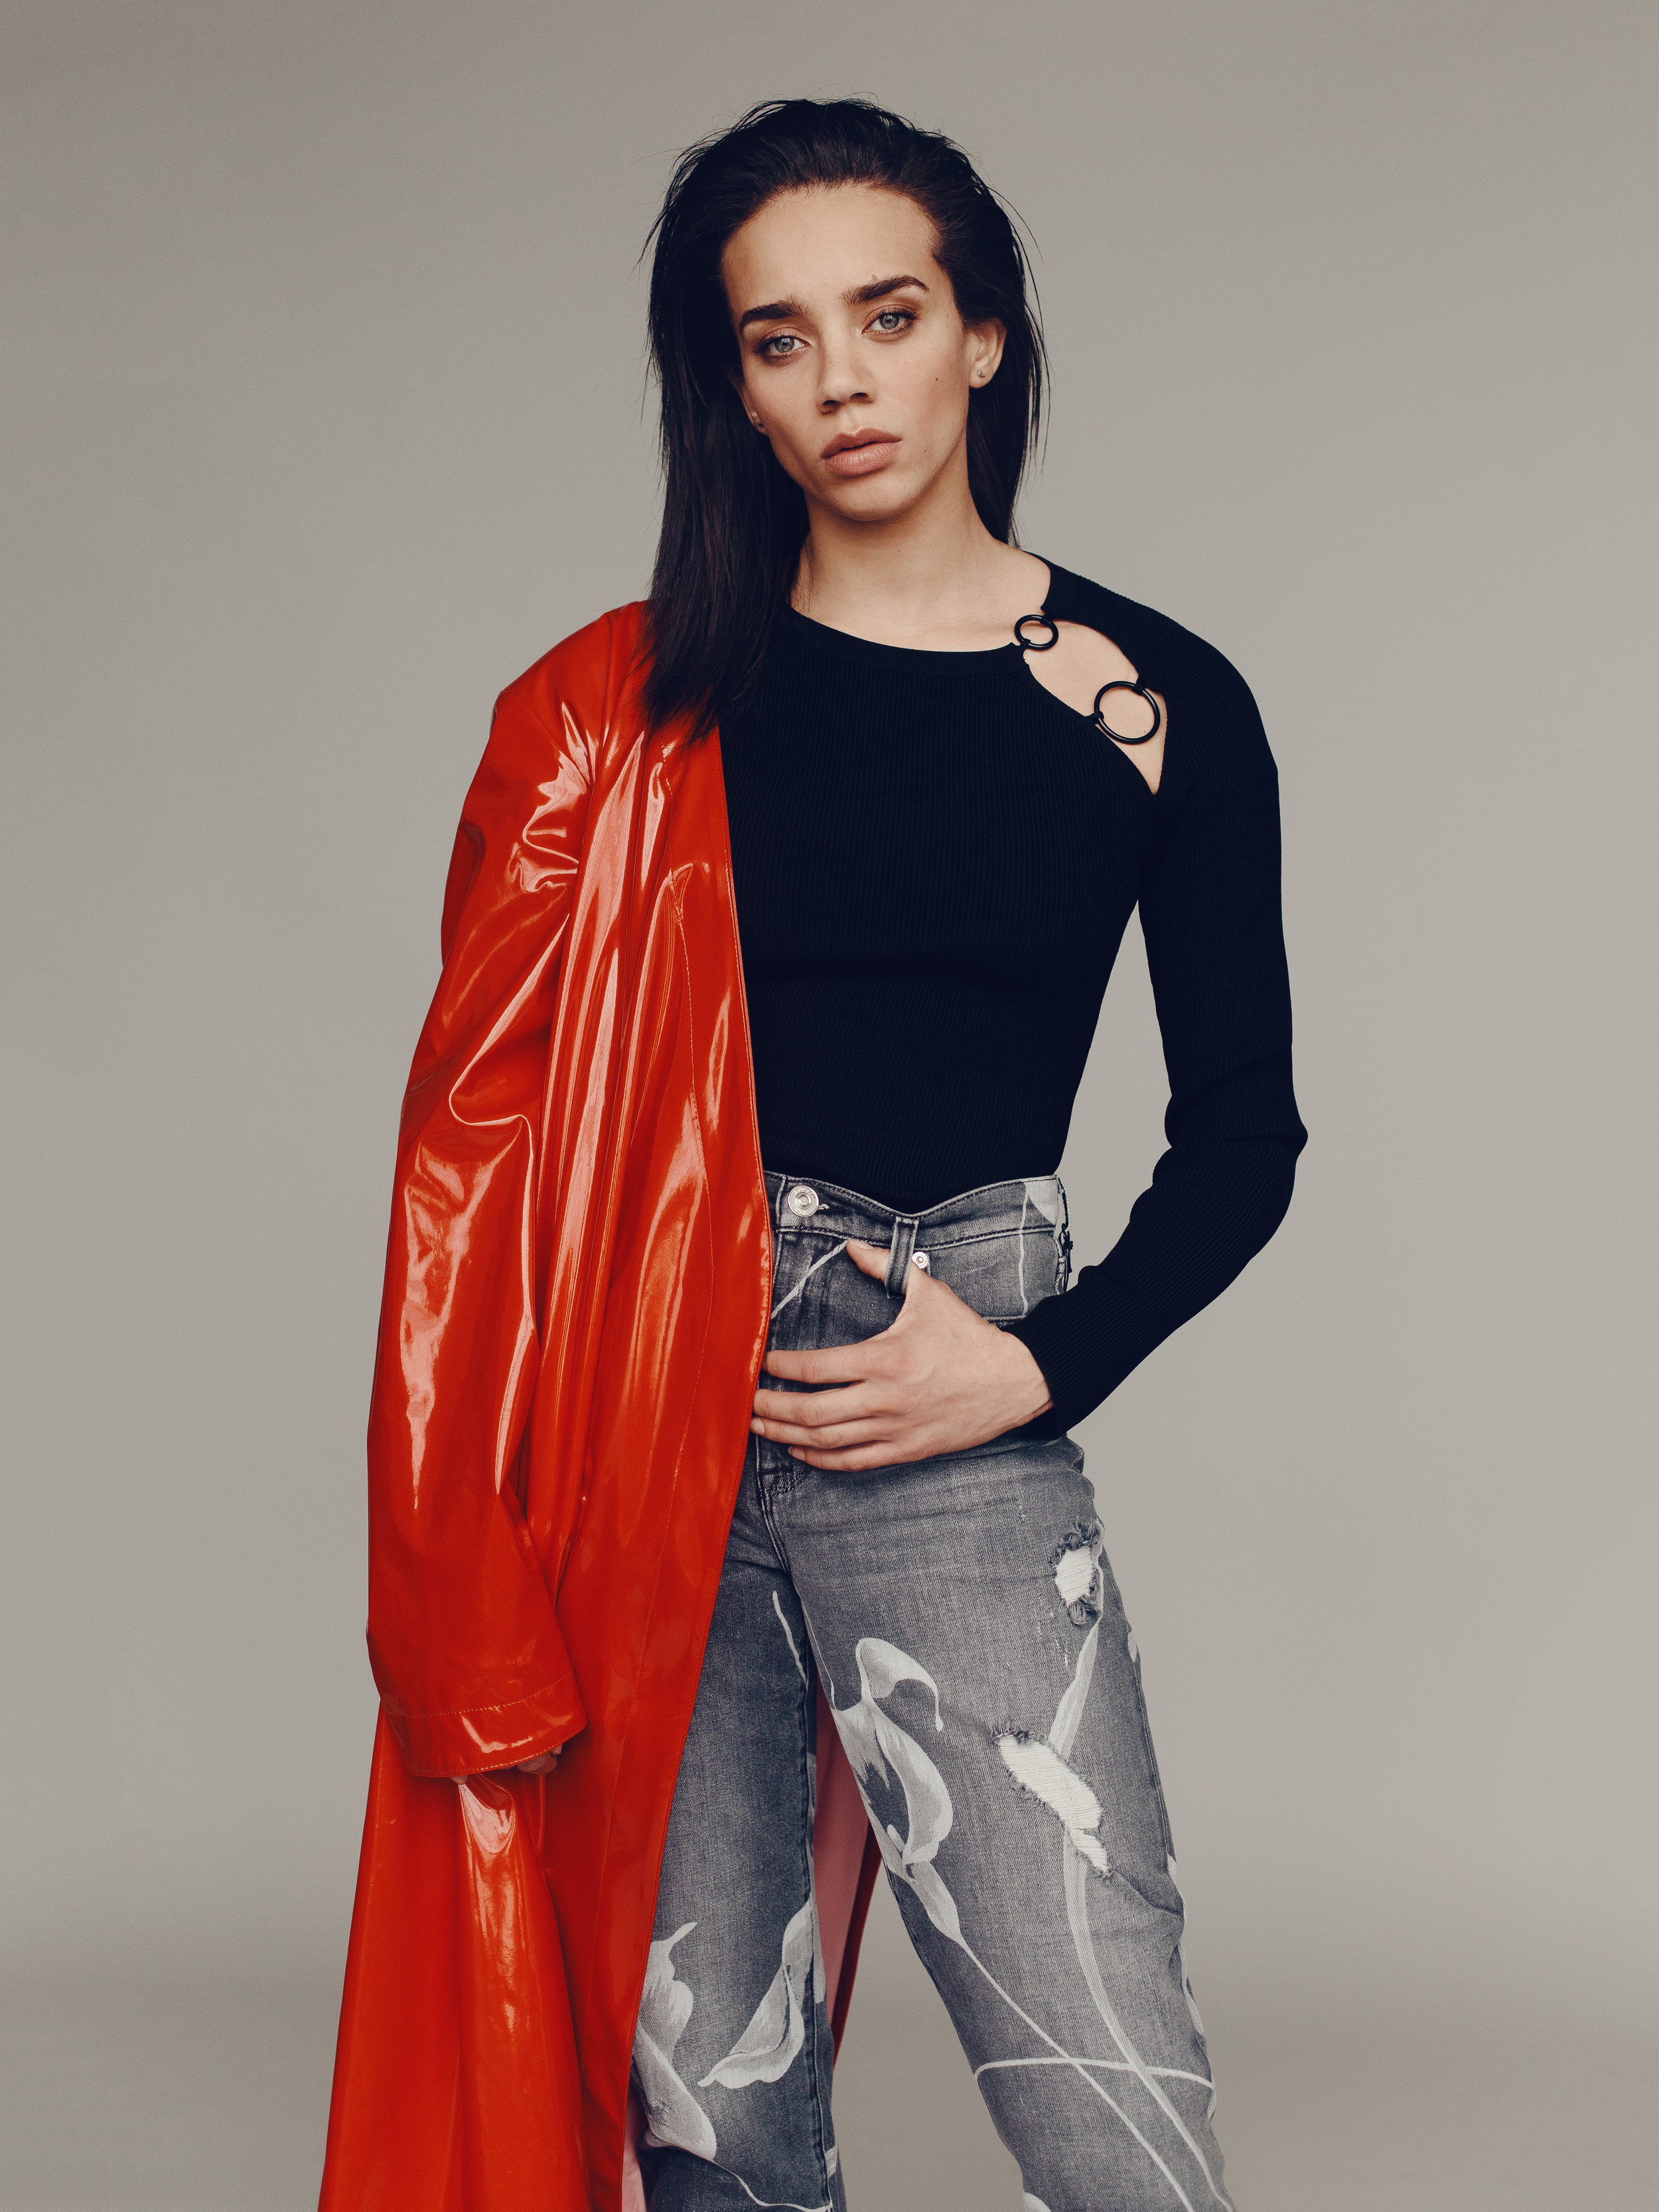 ATTICO  available at Matchesfashion.com coat,  CUSHNIE ET OCHS  sweater,  HUDSON JEANS  jeans.